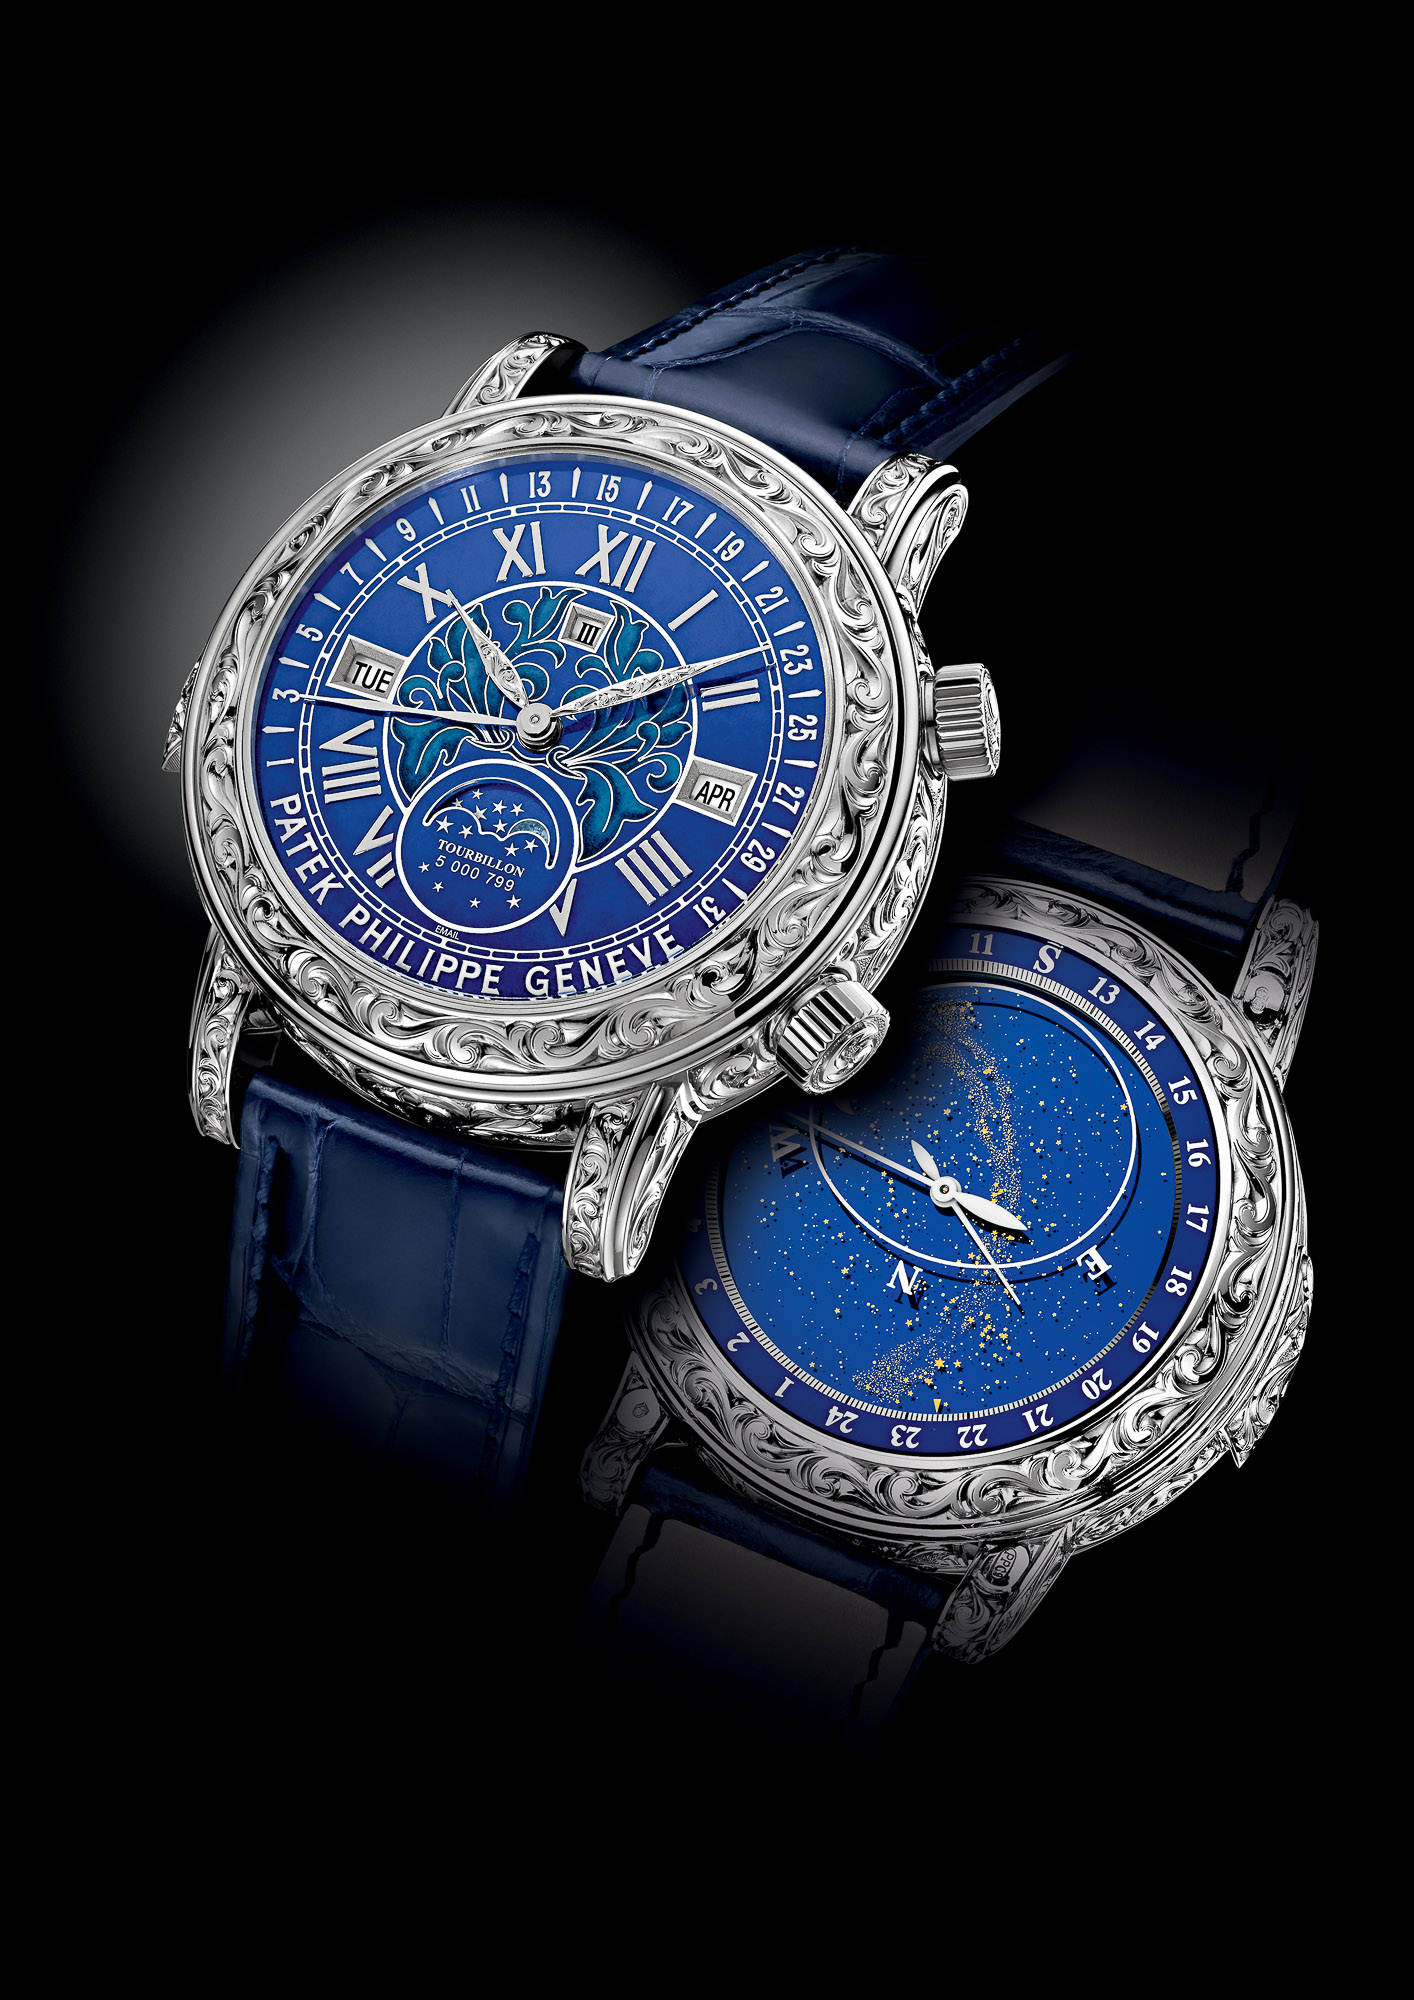 P Philippe Watch Introducing The Patek Philippe Sky Moon Tourbillon 6002g A New